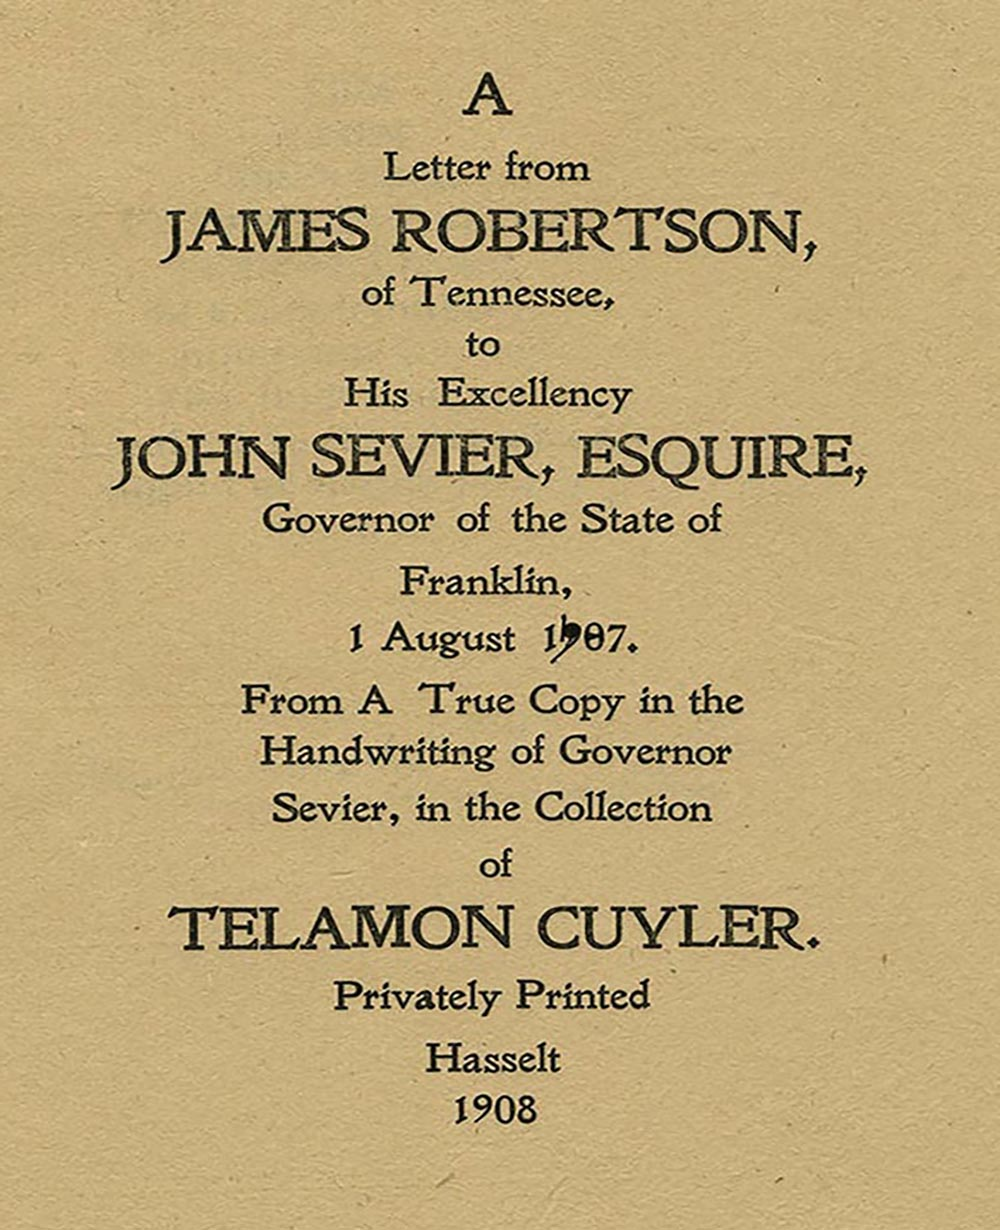 James Robertson letter to Governor John Sevier of State of Franklin